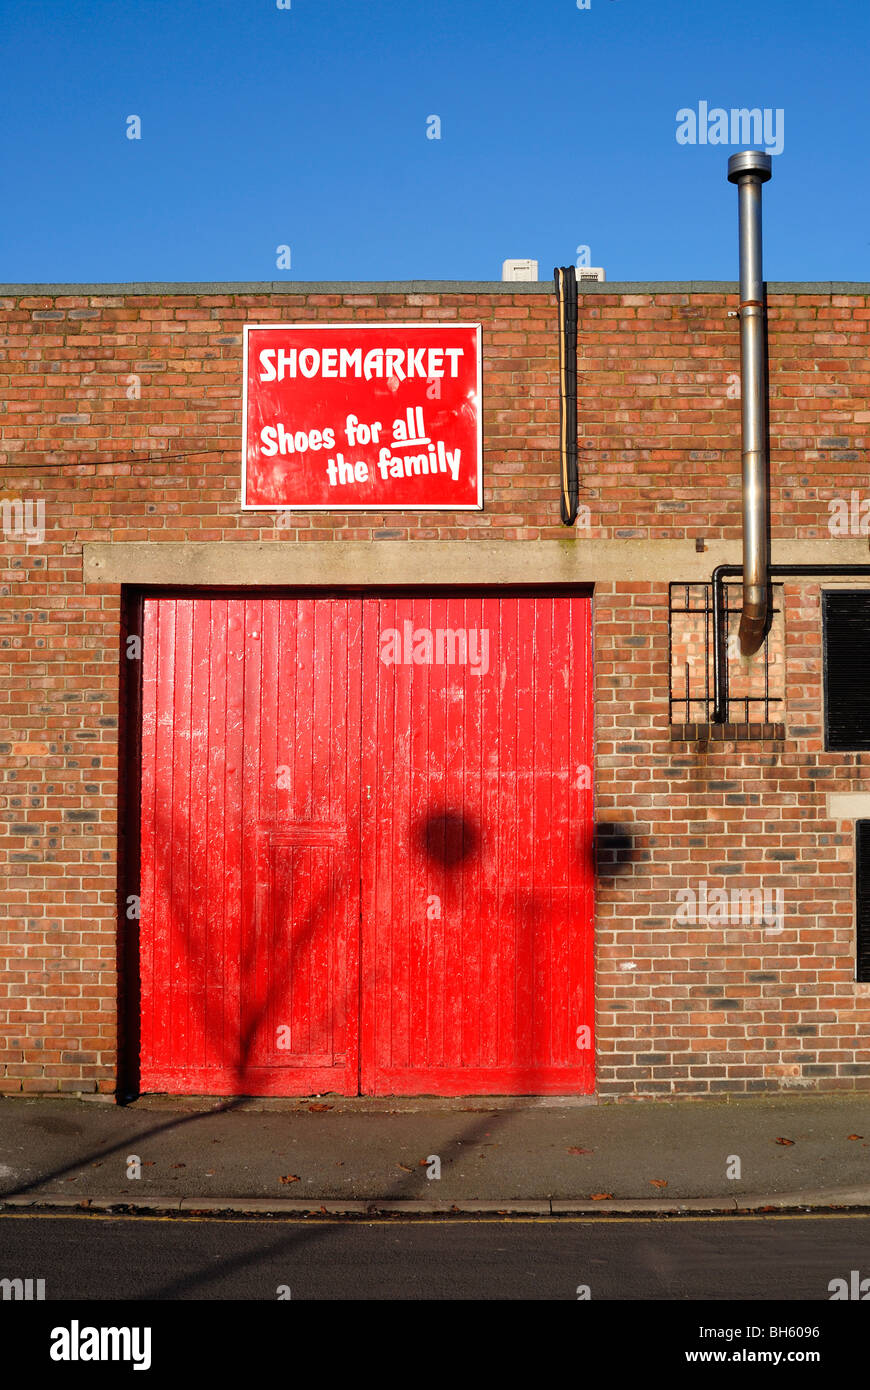 Bright red doors and red and white 'Shoemarket' sign. - Stock Image